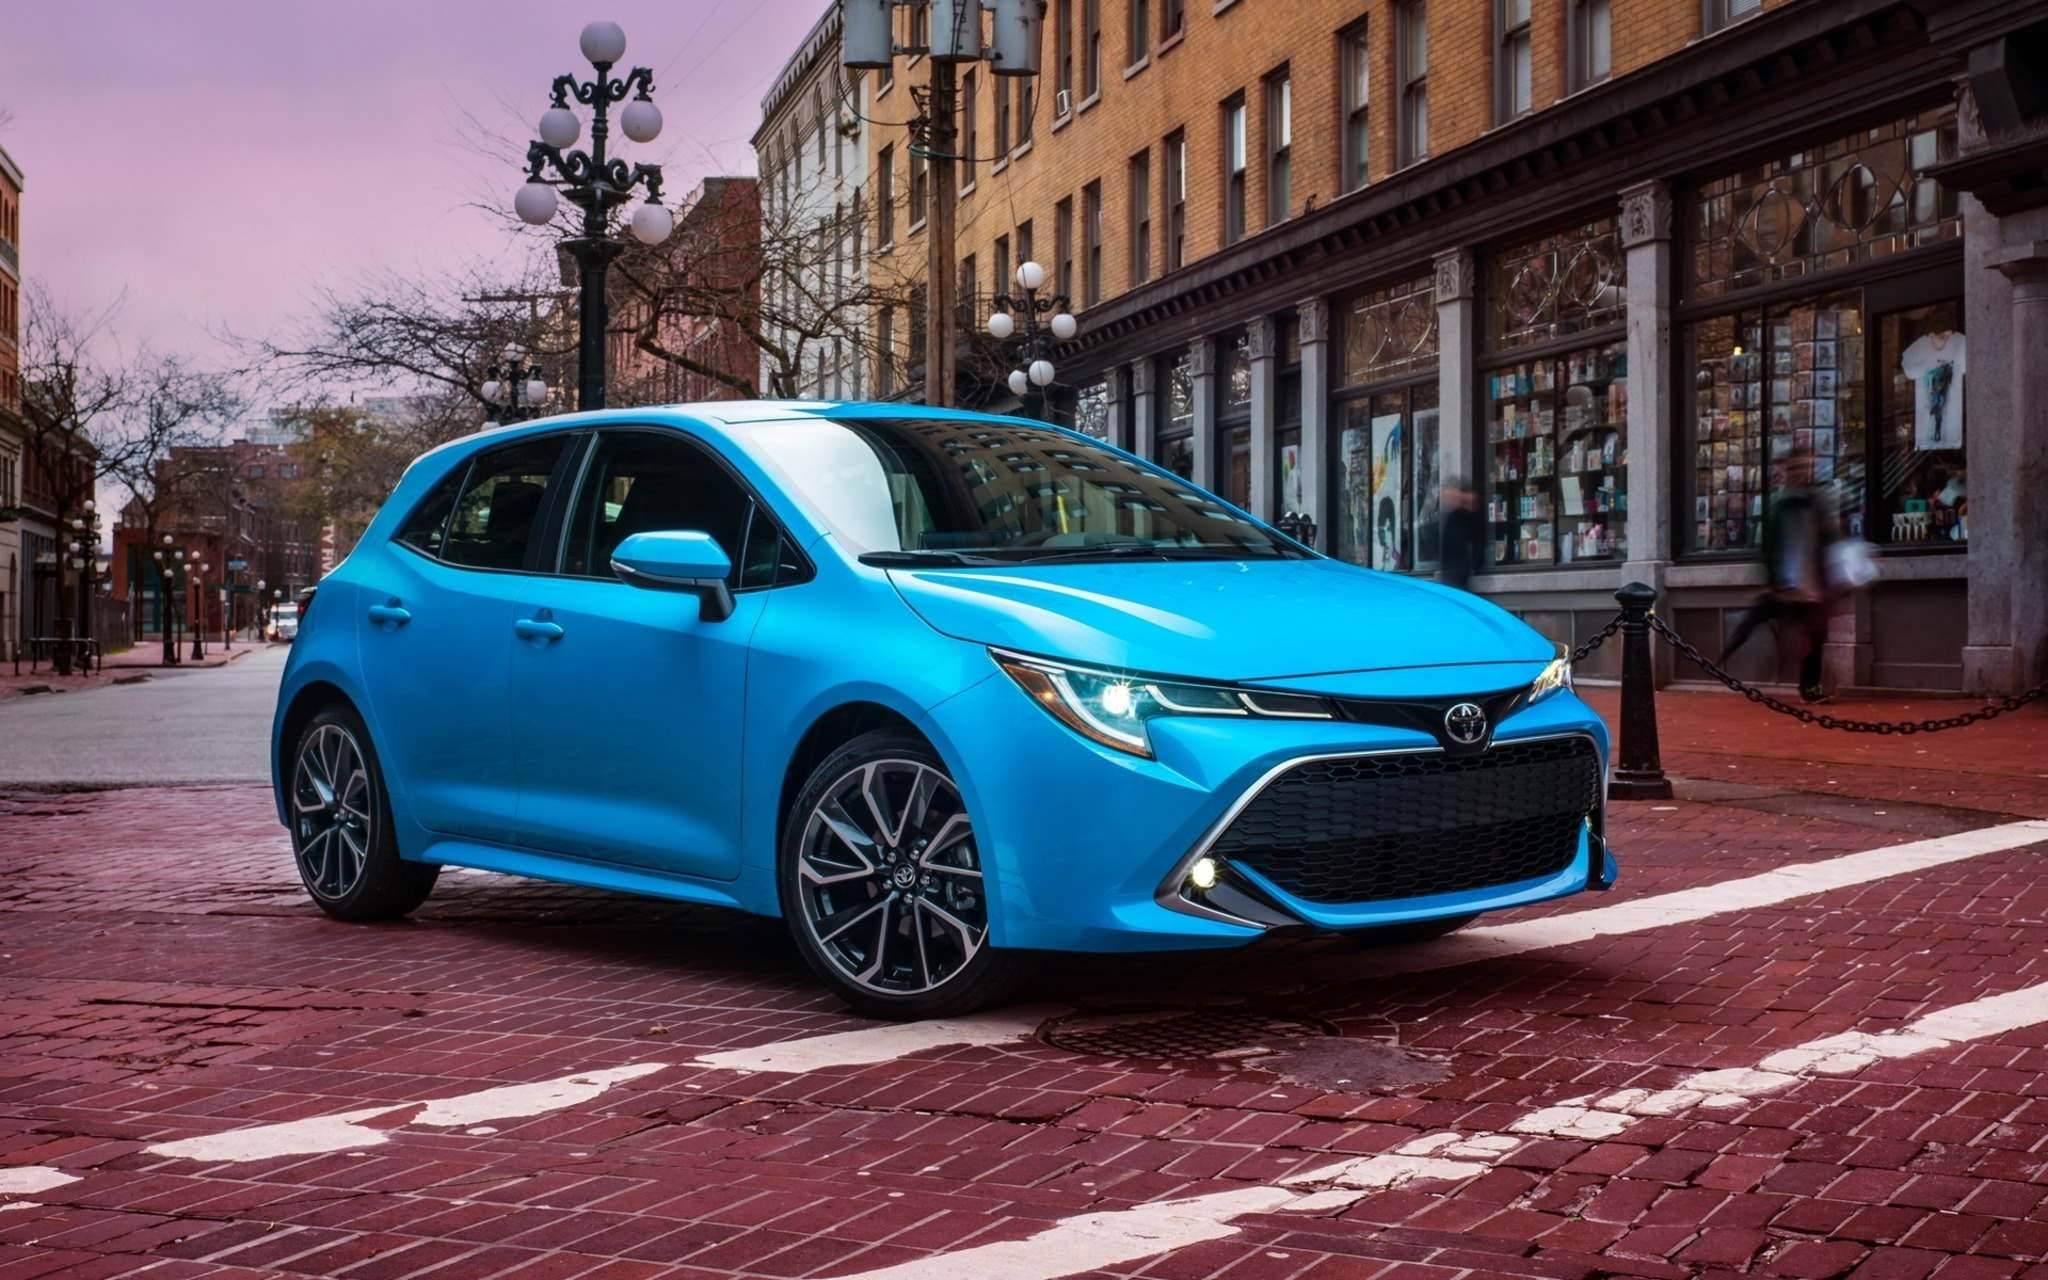 ToyotaThe 2019 Toyota Corolla Hatchback is based on a new platform that it shares with the company's most recent small cars and crossovers.